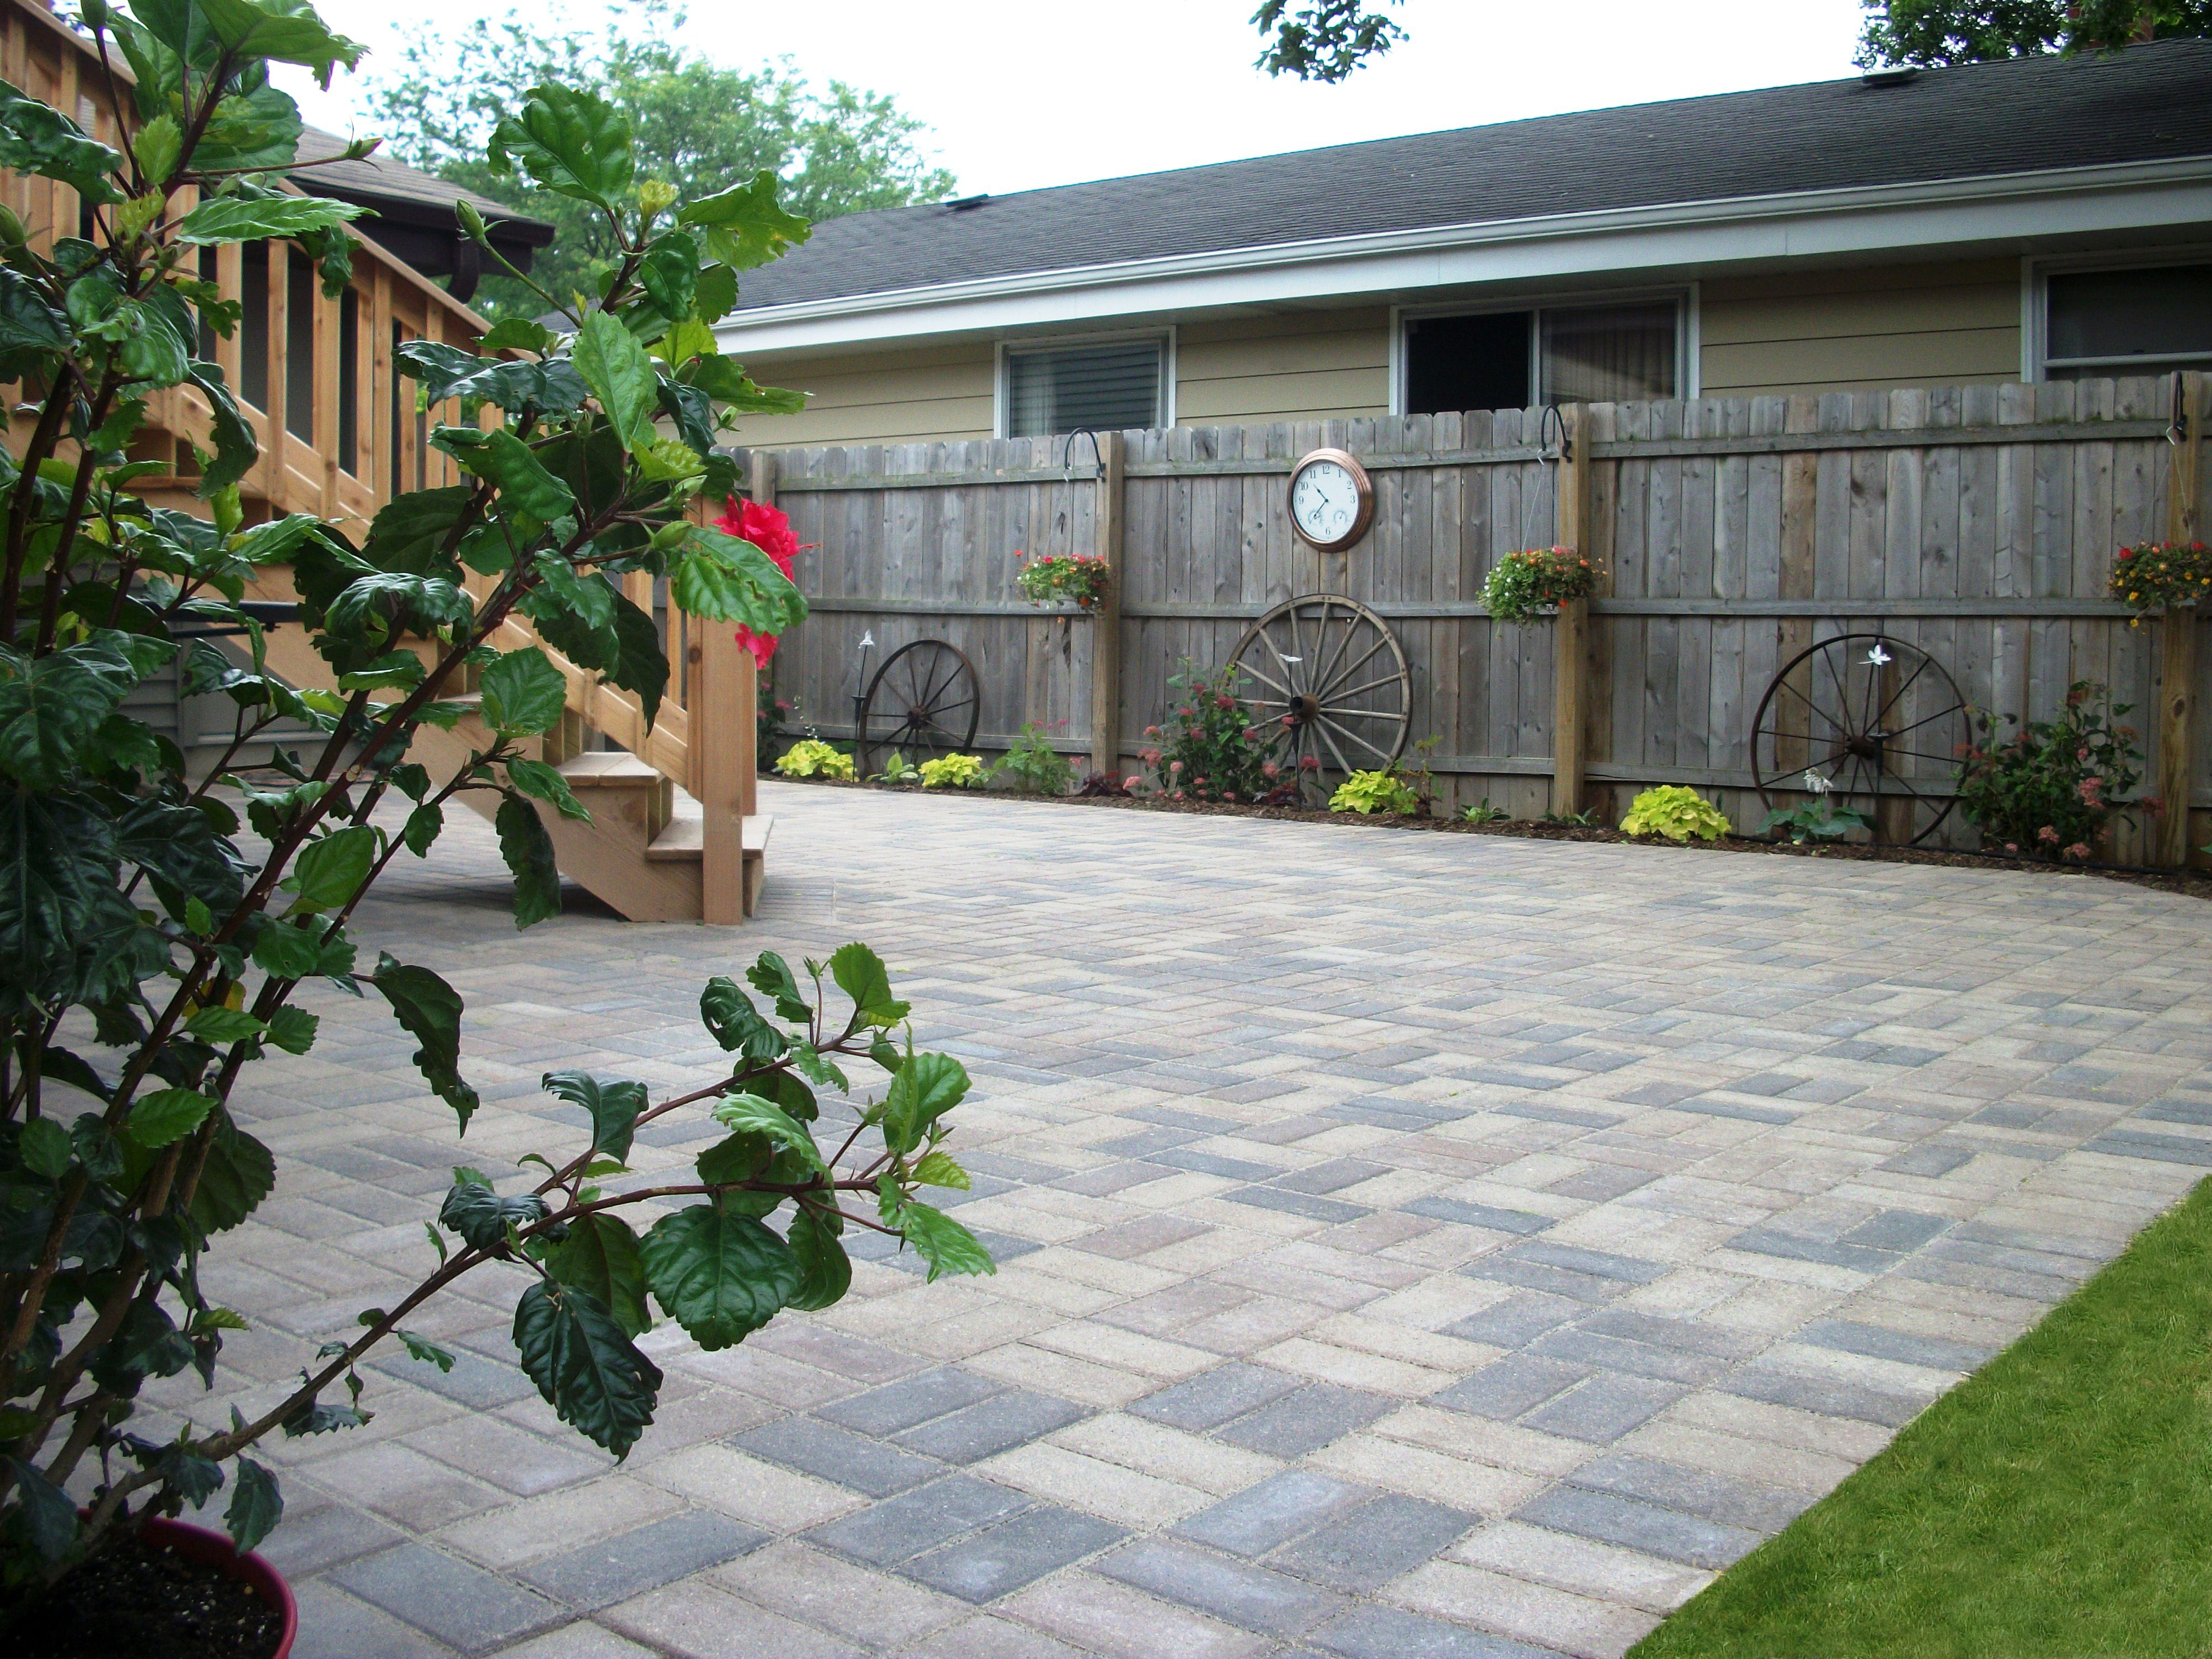 Grow Rite Design Unilock Hollandstone Patio In The Color Sierra